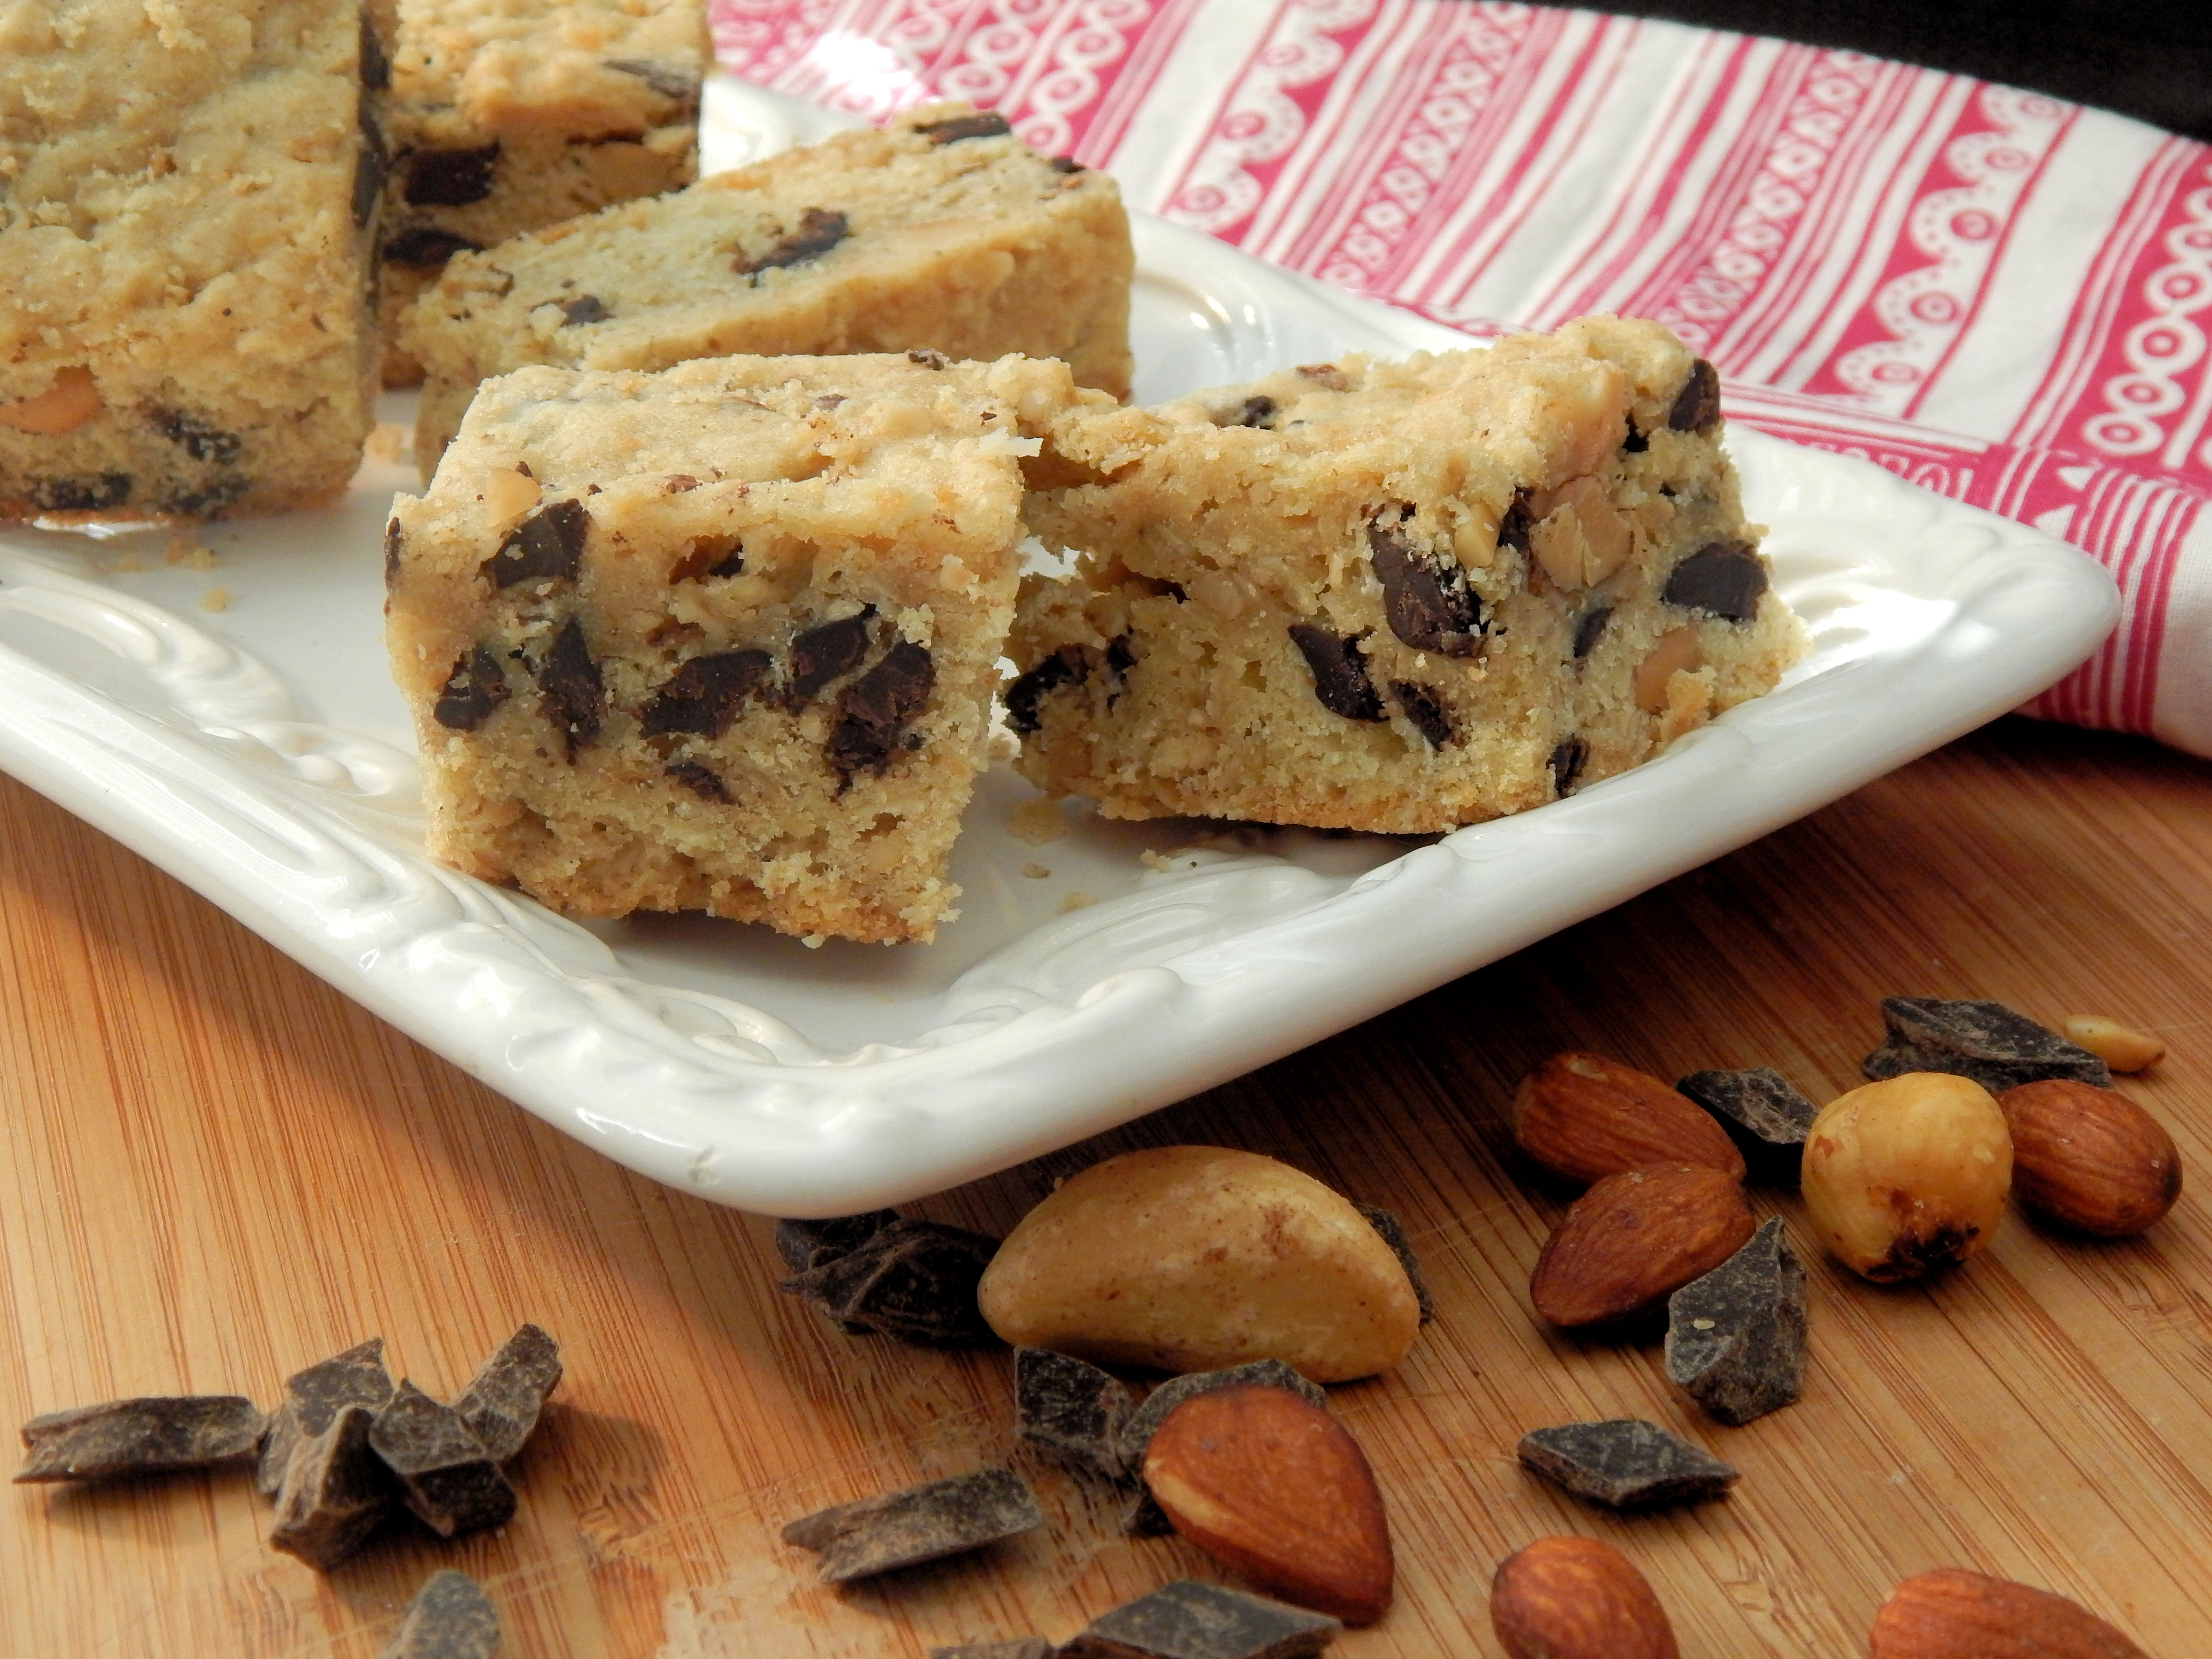 Oat and Chocolate Chip Bar Cookies